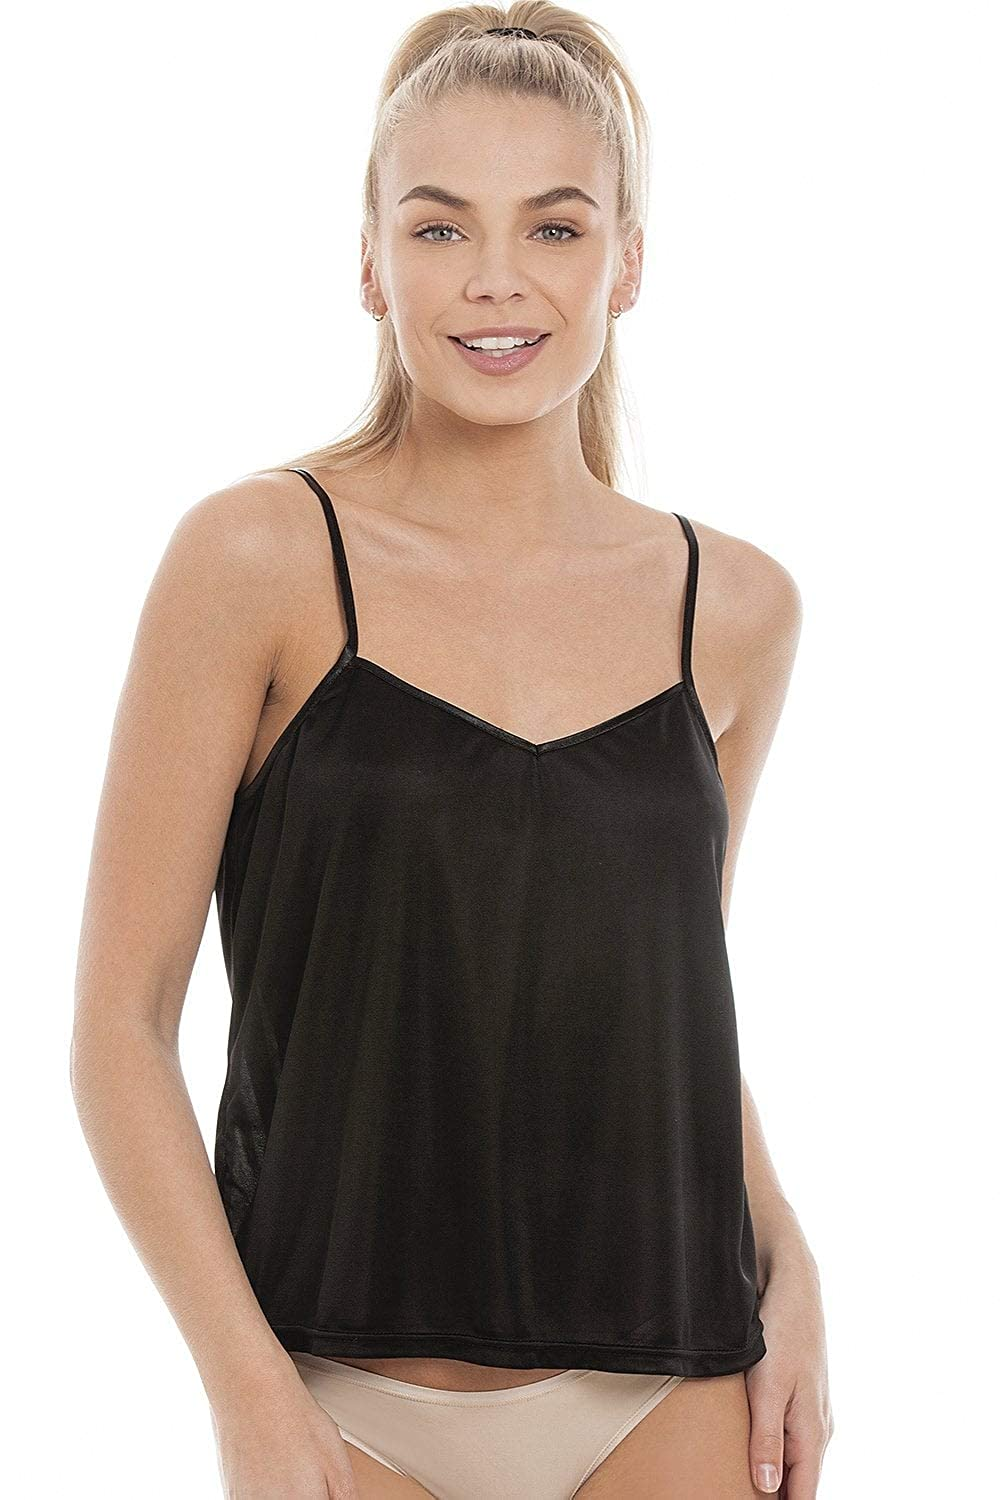 Camille Womens Satin Strap Luxury Cami Top